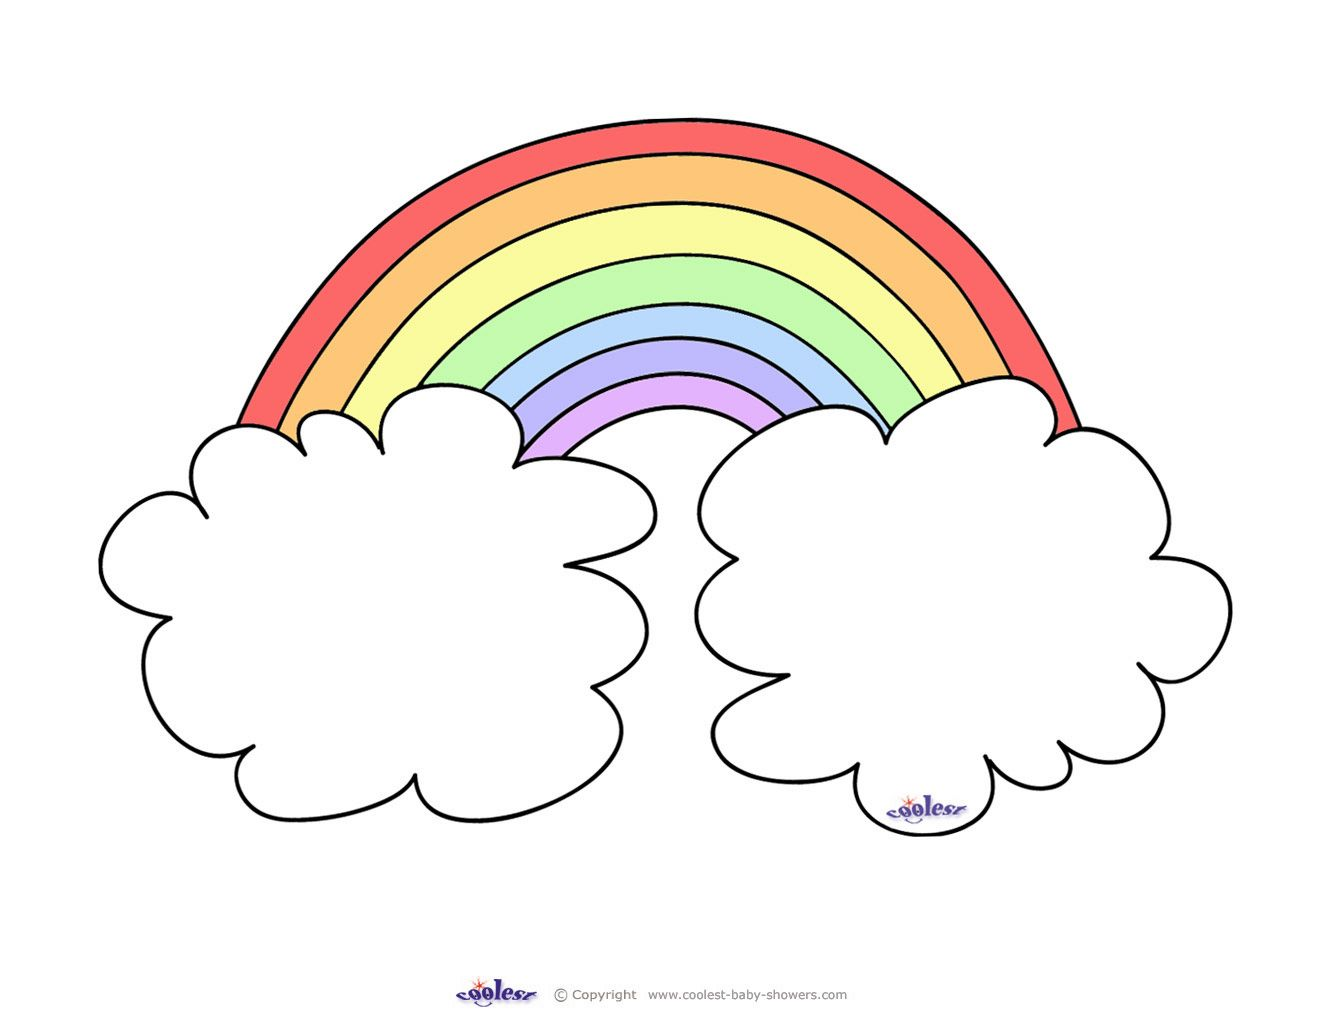 Coloring pages baby shower - Rainbow Coloring Pages Cute Printable For Invites Somewhere Over The Rainbow